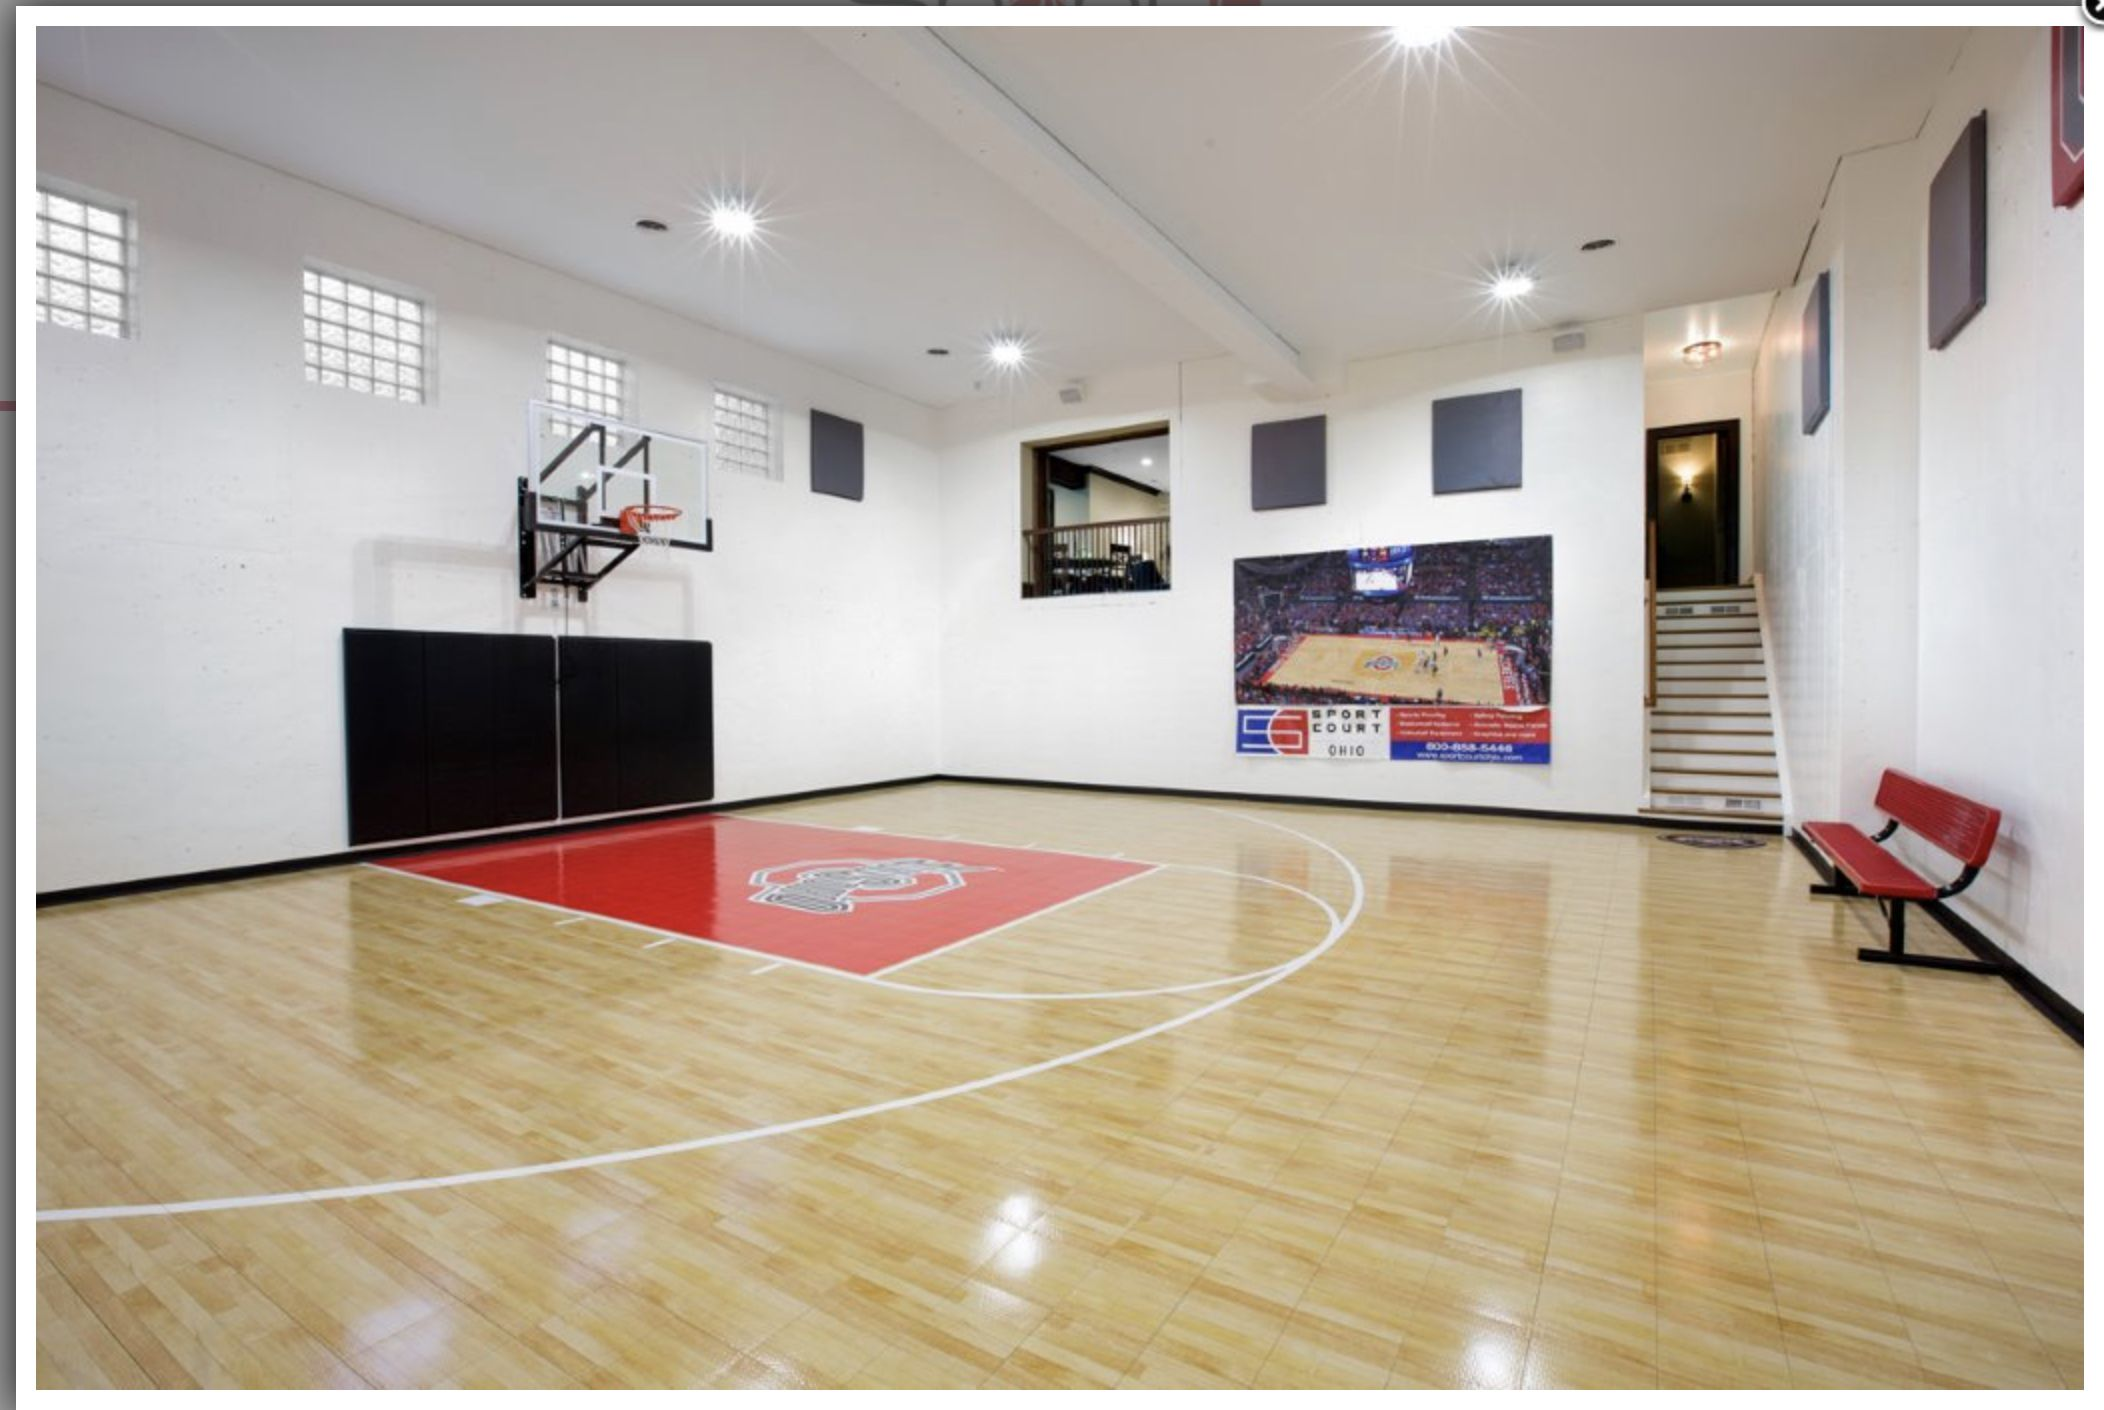 Pin By Tom Benassi On Party Barn Ideas Indoor Basketball Court Home Basketball Court Indoor Sports Court